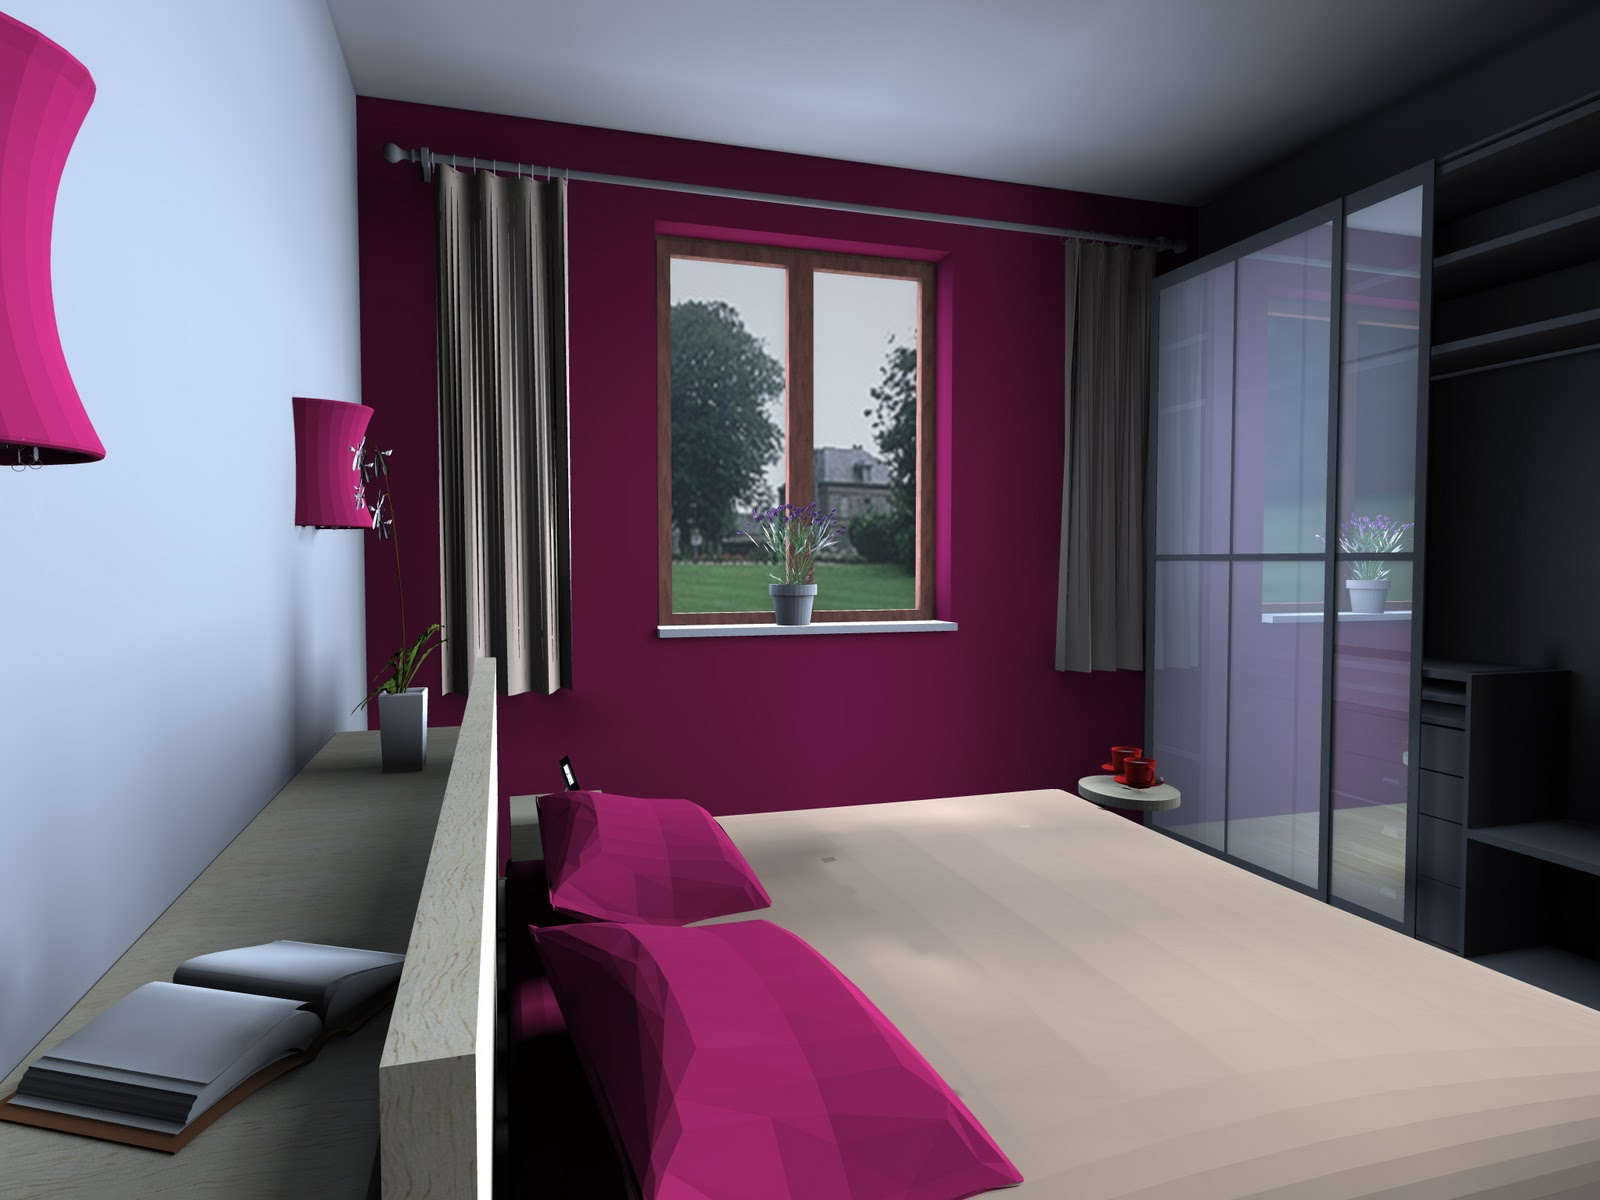 I. D. & A. 3 Interior Designers & Architects: Una camera da letto colorata.